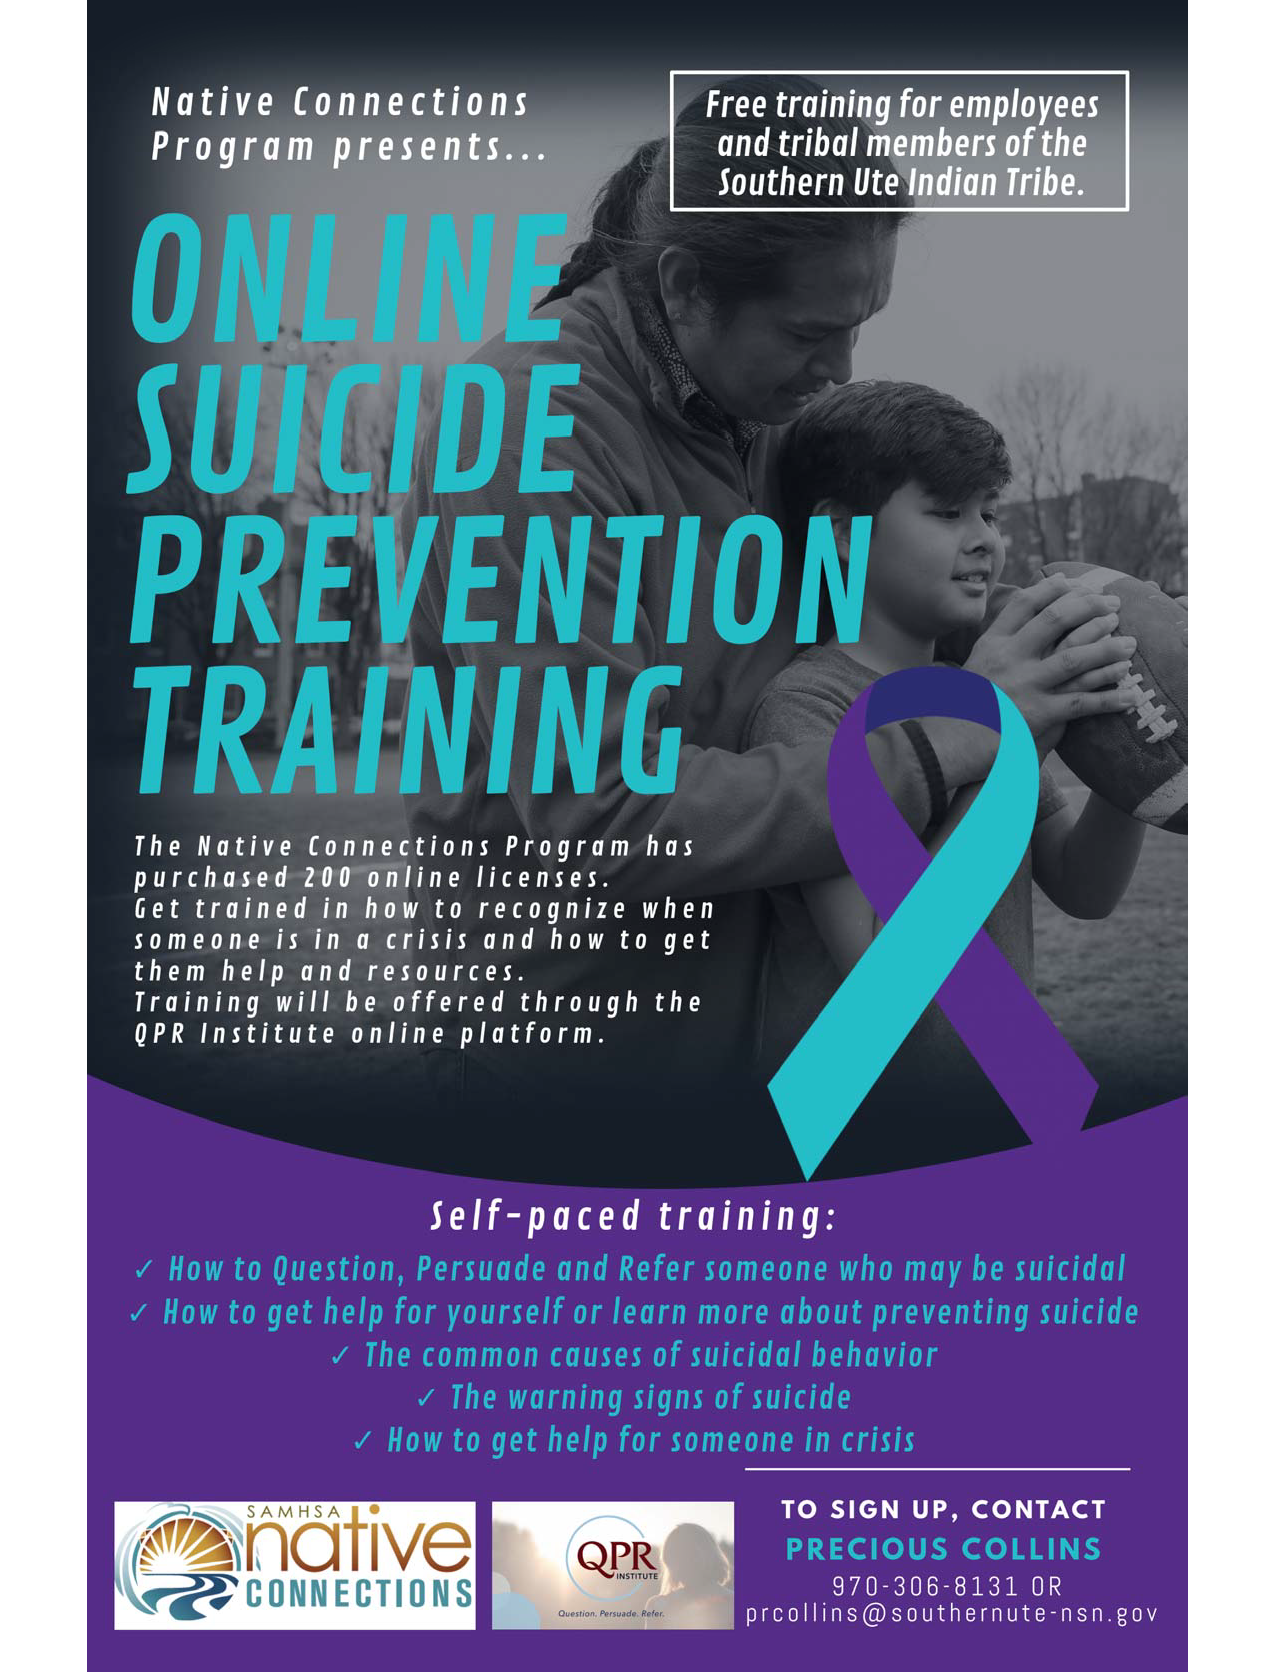 QPR-Online-Suicide-Prevention-Training-SUIT-Employees-and-Tribal-Members-_